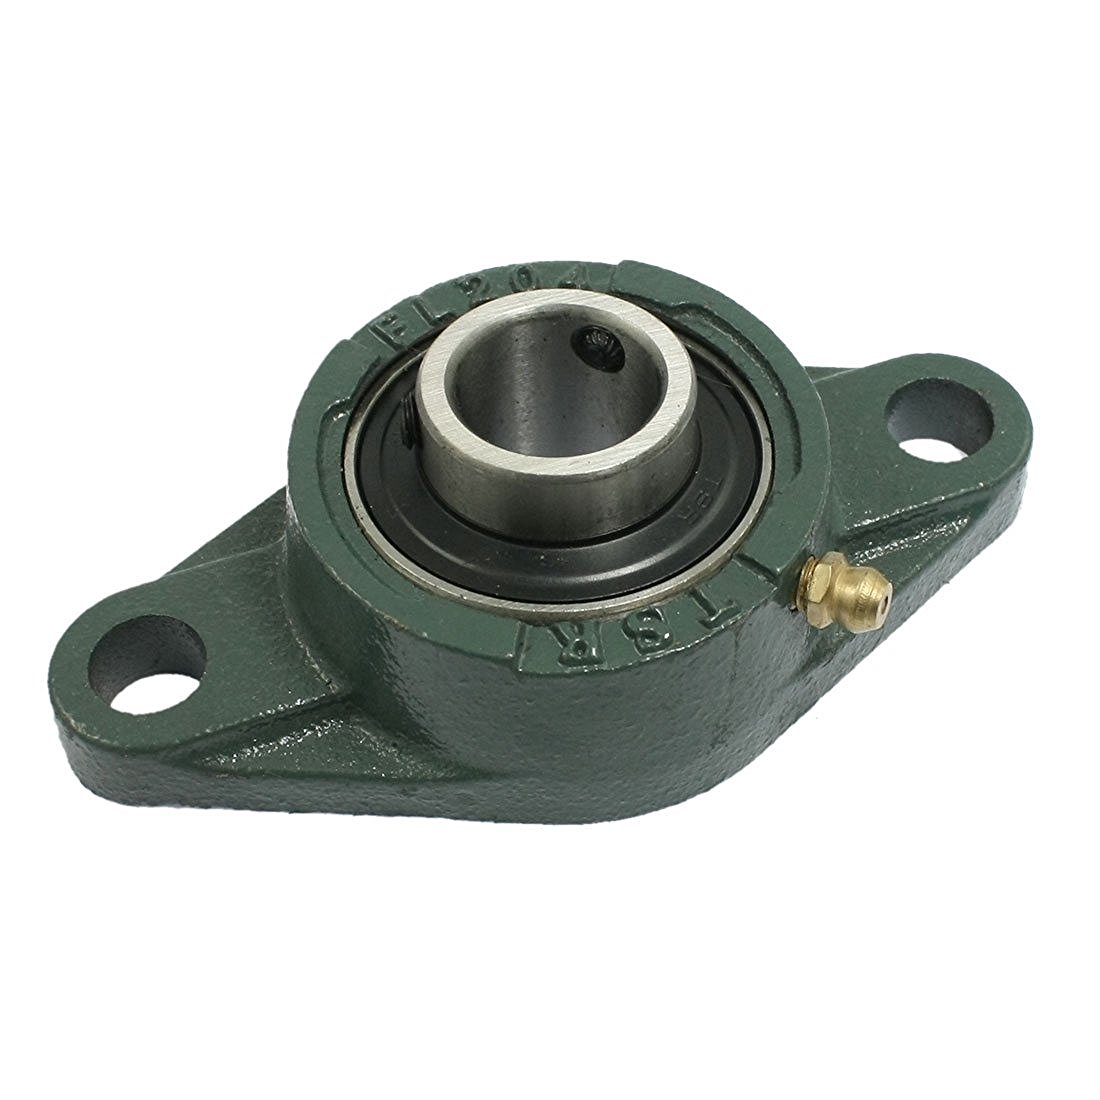 FL204 20mm Bore Self-aligning Flange Bearing UC204 mochu 23134 23134ca 23134ca w33 170x280x88 3003734 3053734hk spherical roller bearings self aligning cylindrical bore